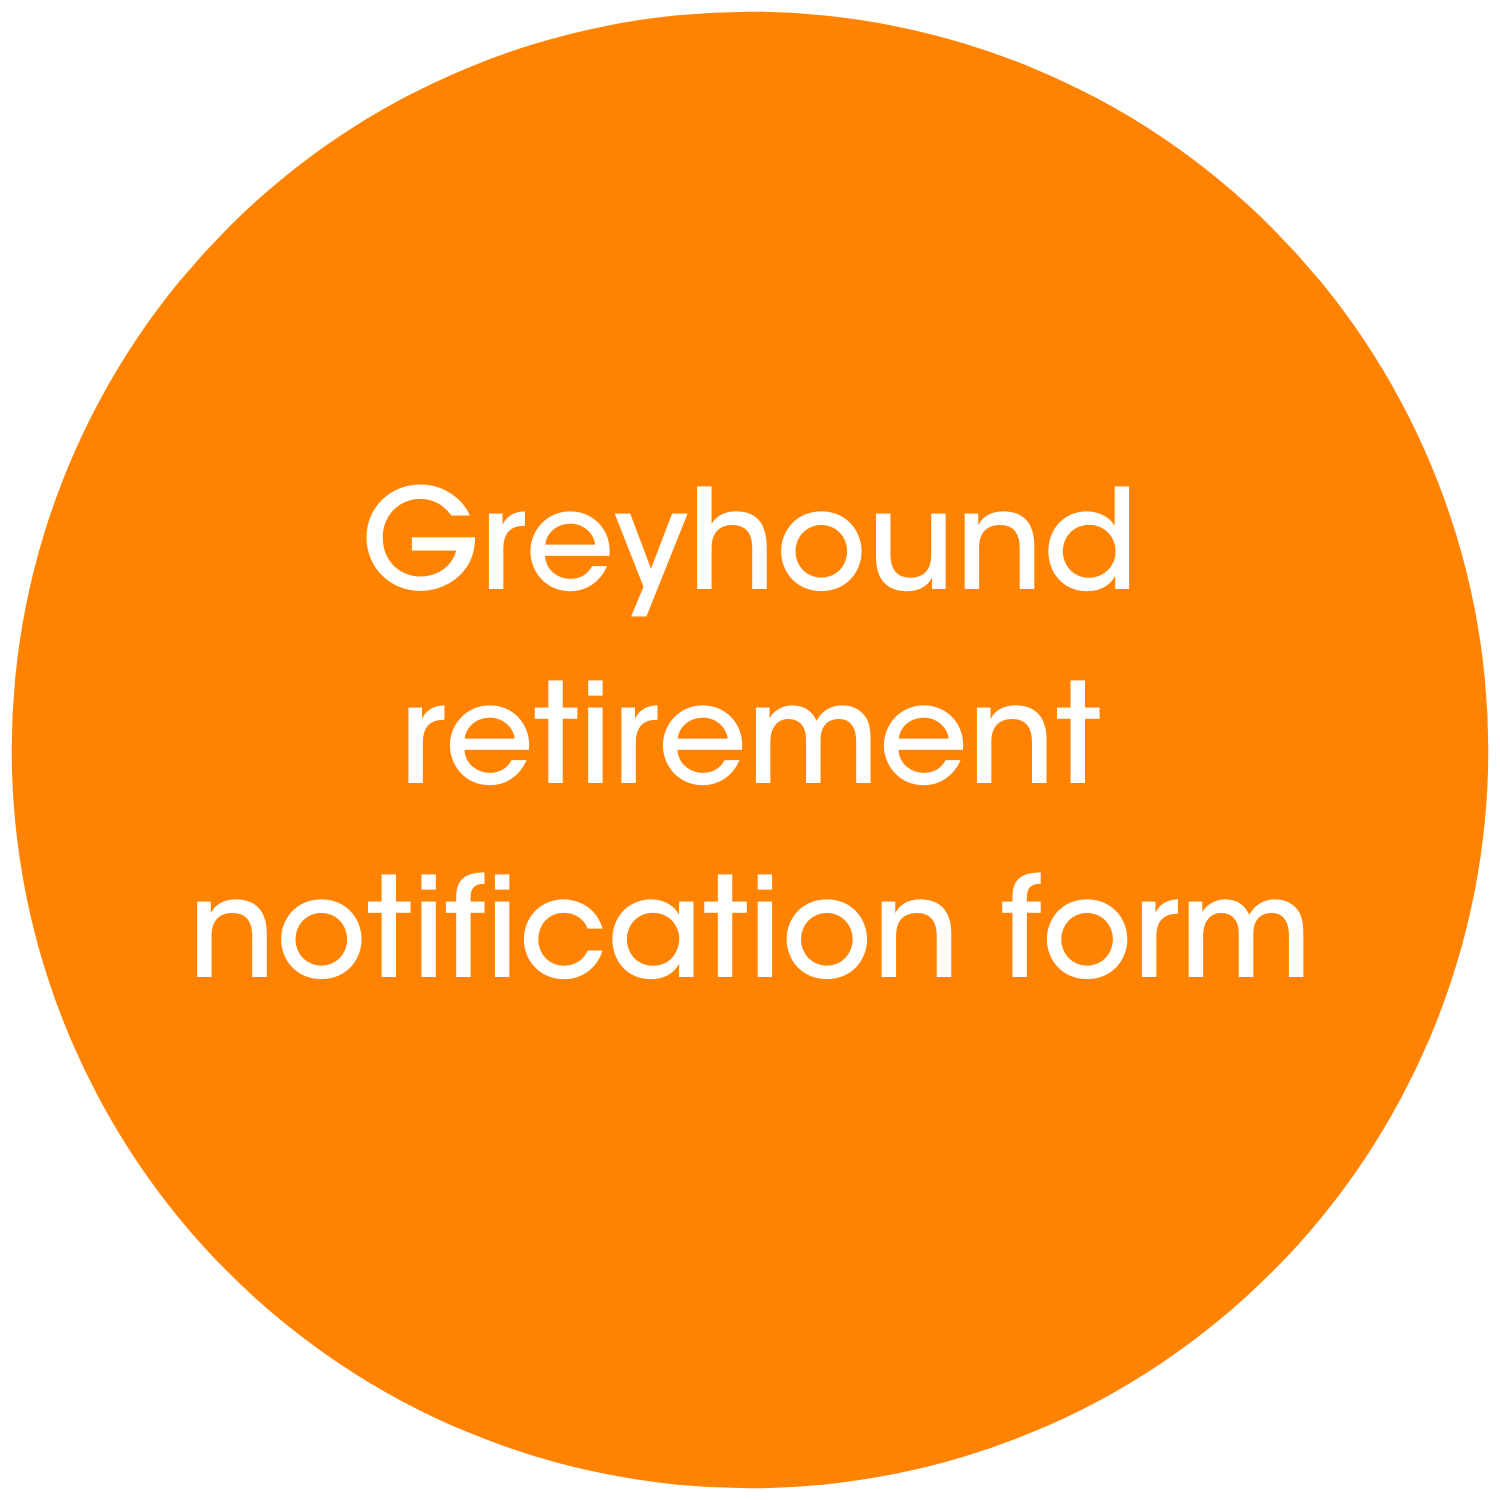 Retirement notification form link